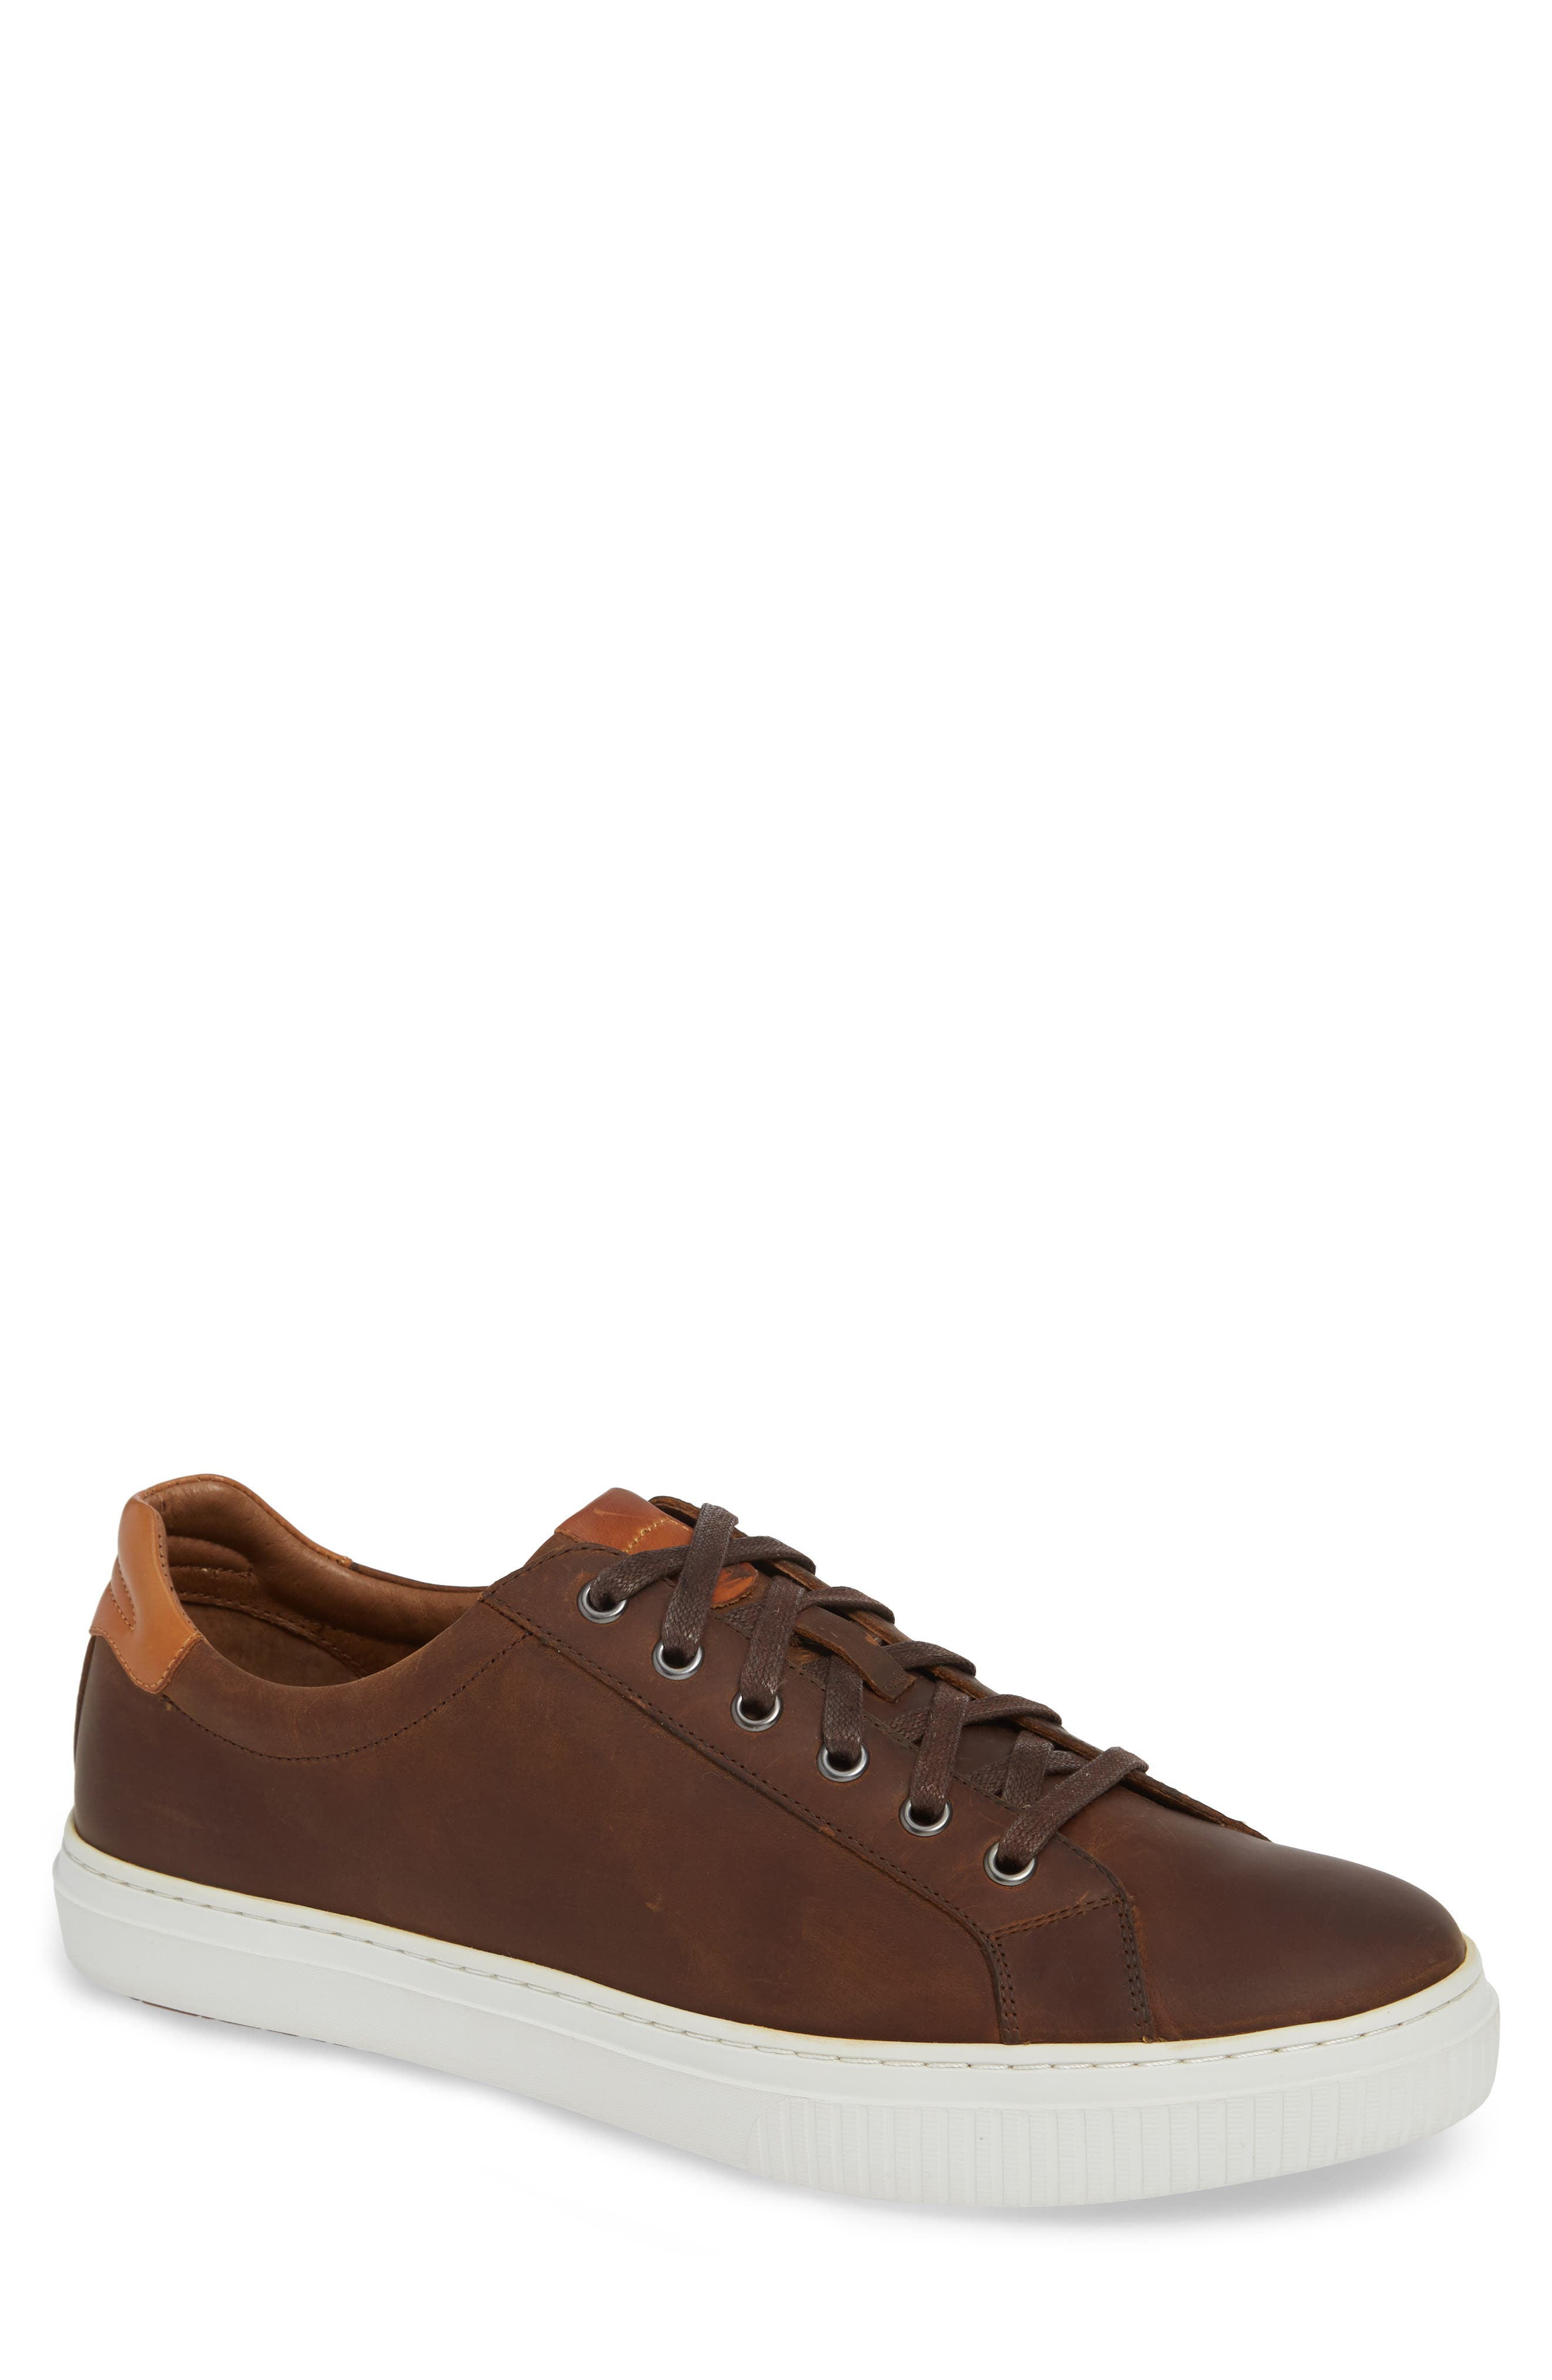 Toliver Low Top Sneaker,                         Main,                         color, TAN LEATHER